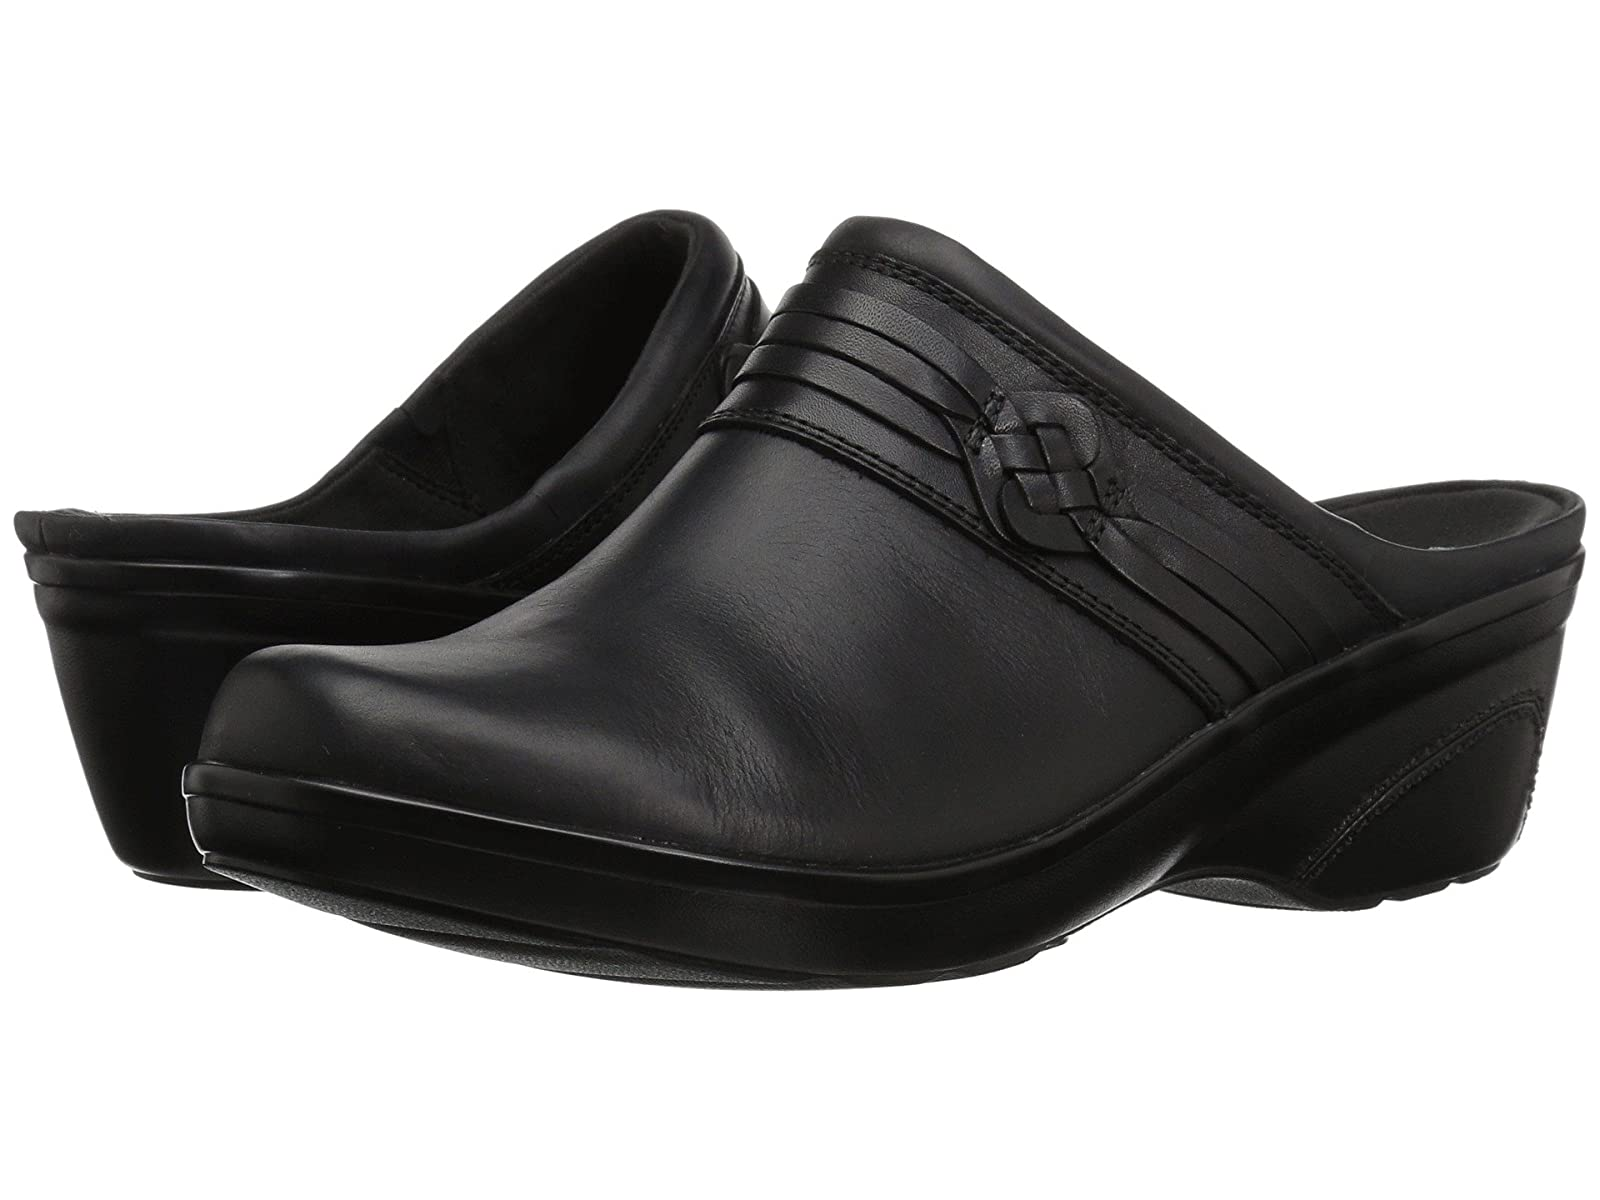 Clarks Marion JessCheap and distinctive eye-catching shoes